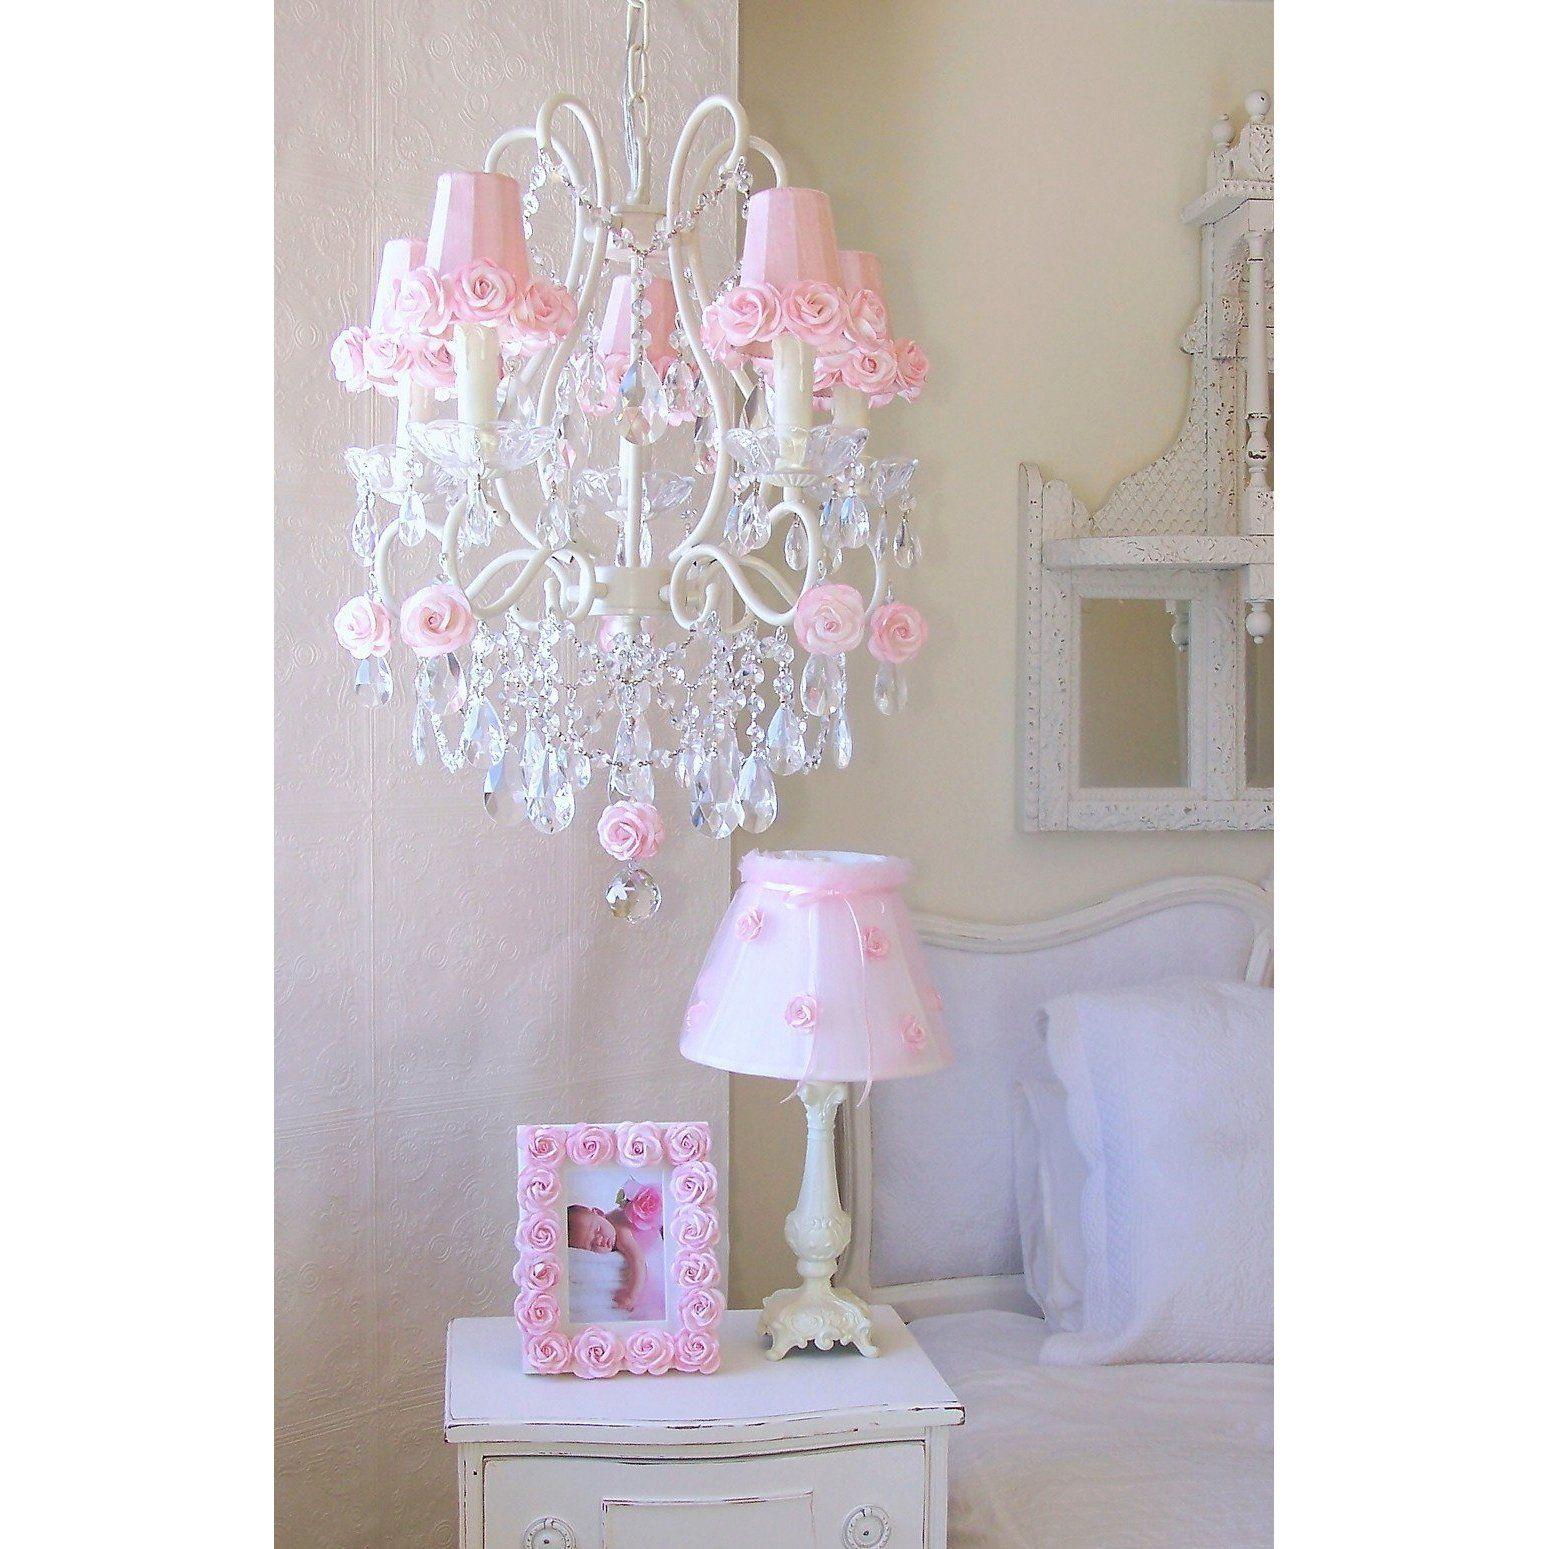 5Light Antique White Chandelier with Pink Rose Shades